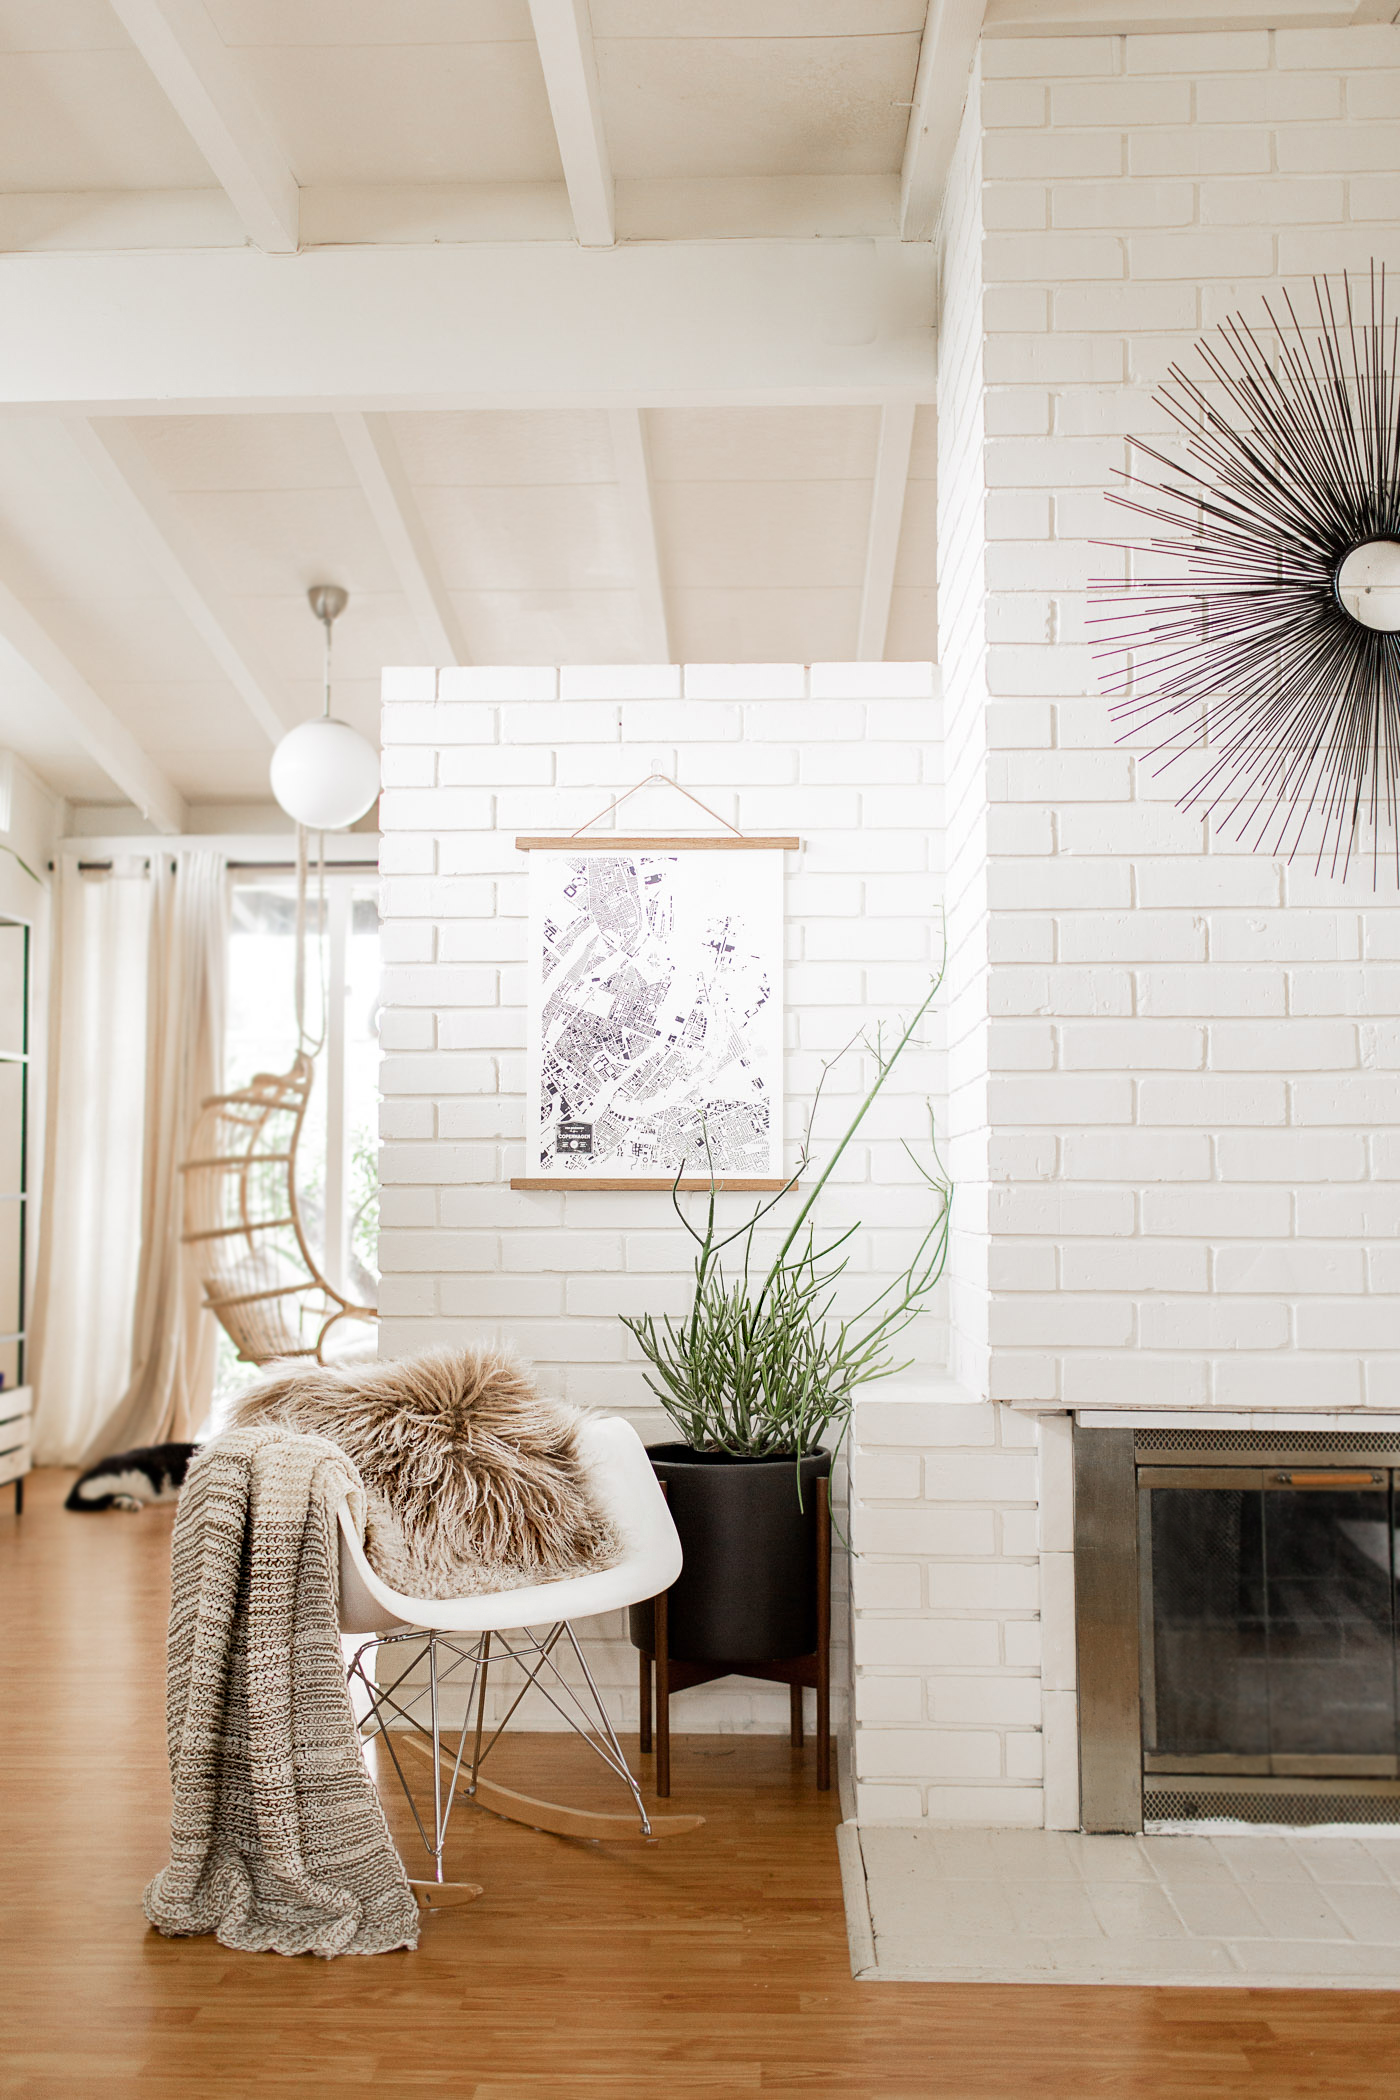 How to Create a Calm and Happy Home